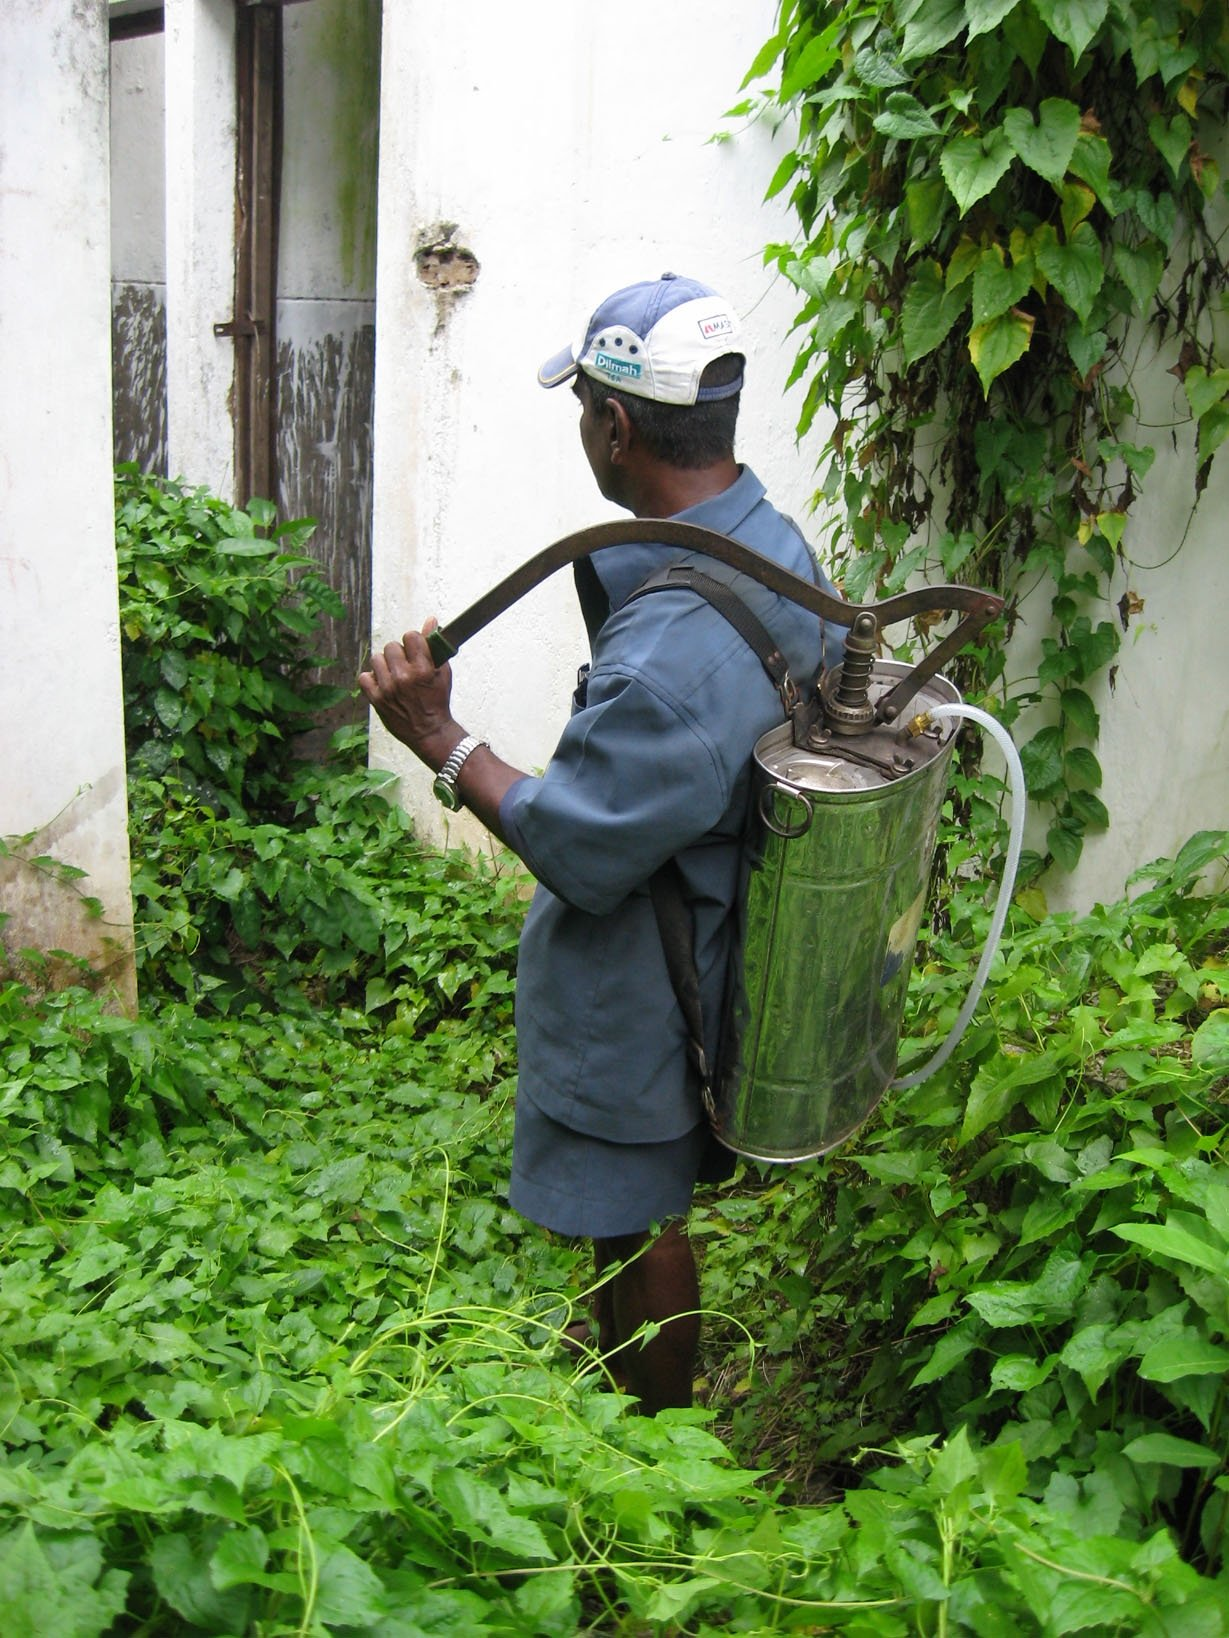 Local government workers, like this man from the Colombo Municipal Council, are regularly deployed to spray insecticide in homes, gardens and along roadways islandwide.